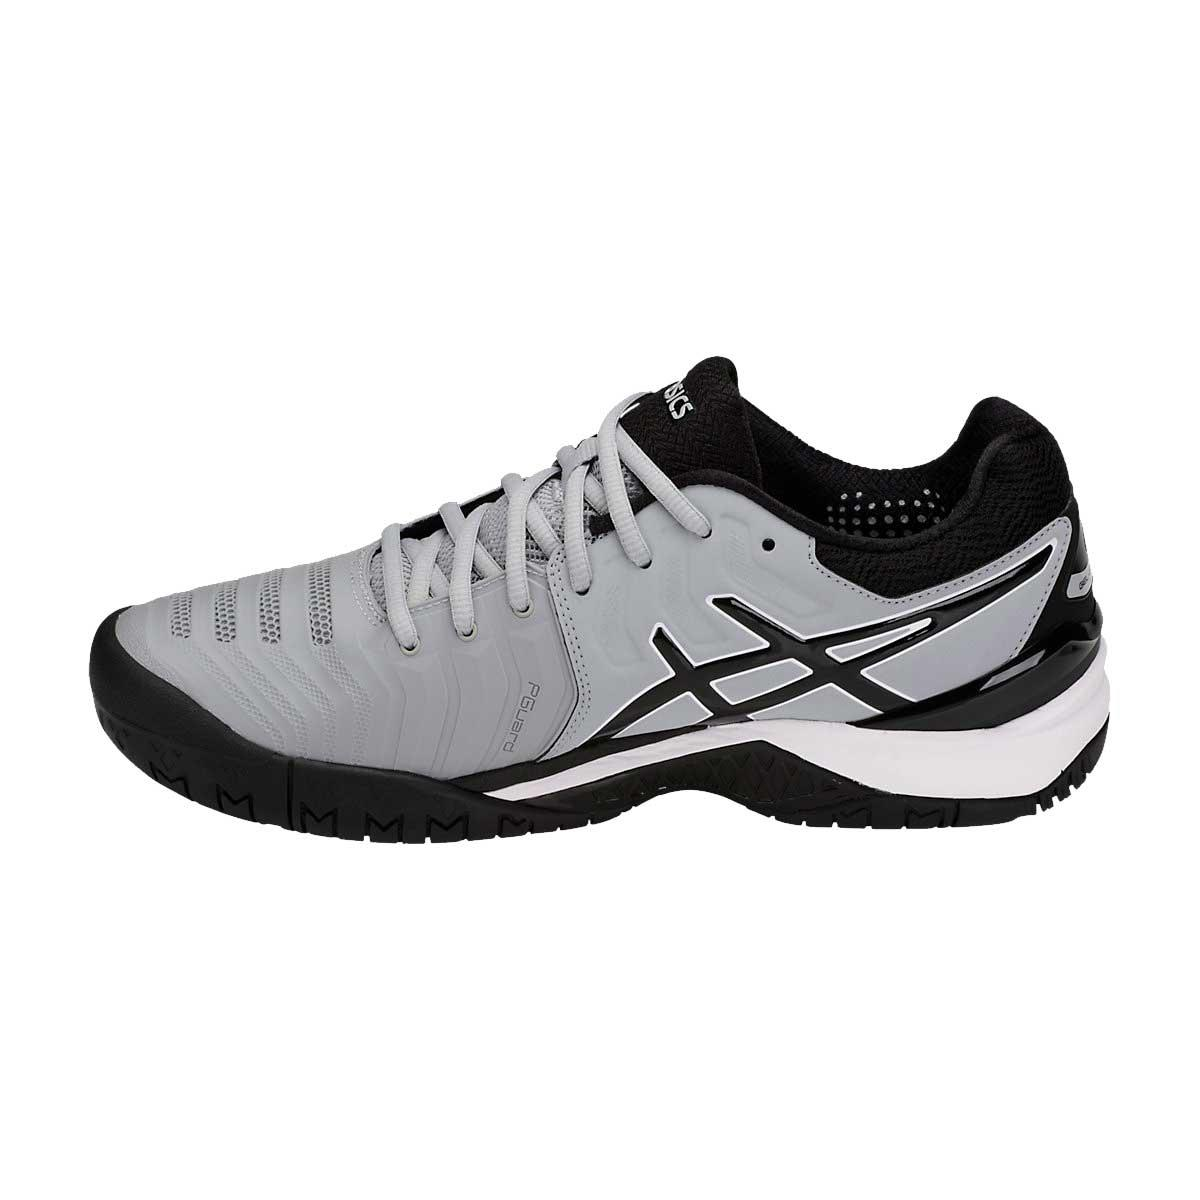 a74feadae11 Tênis Asics Gel Resolution 7 Masculino